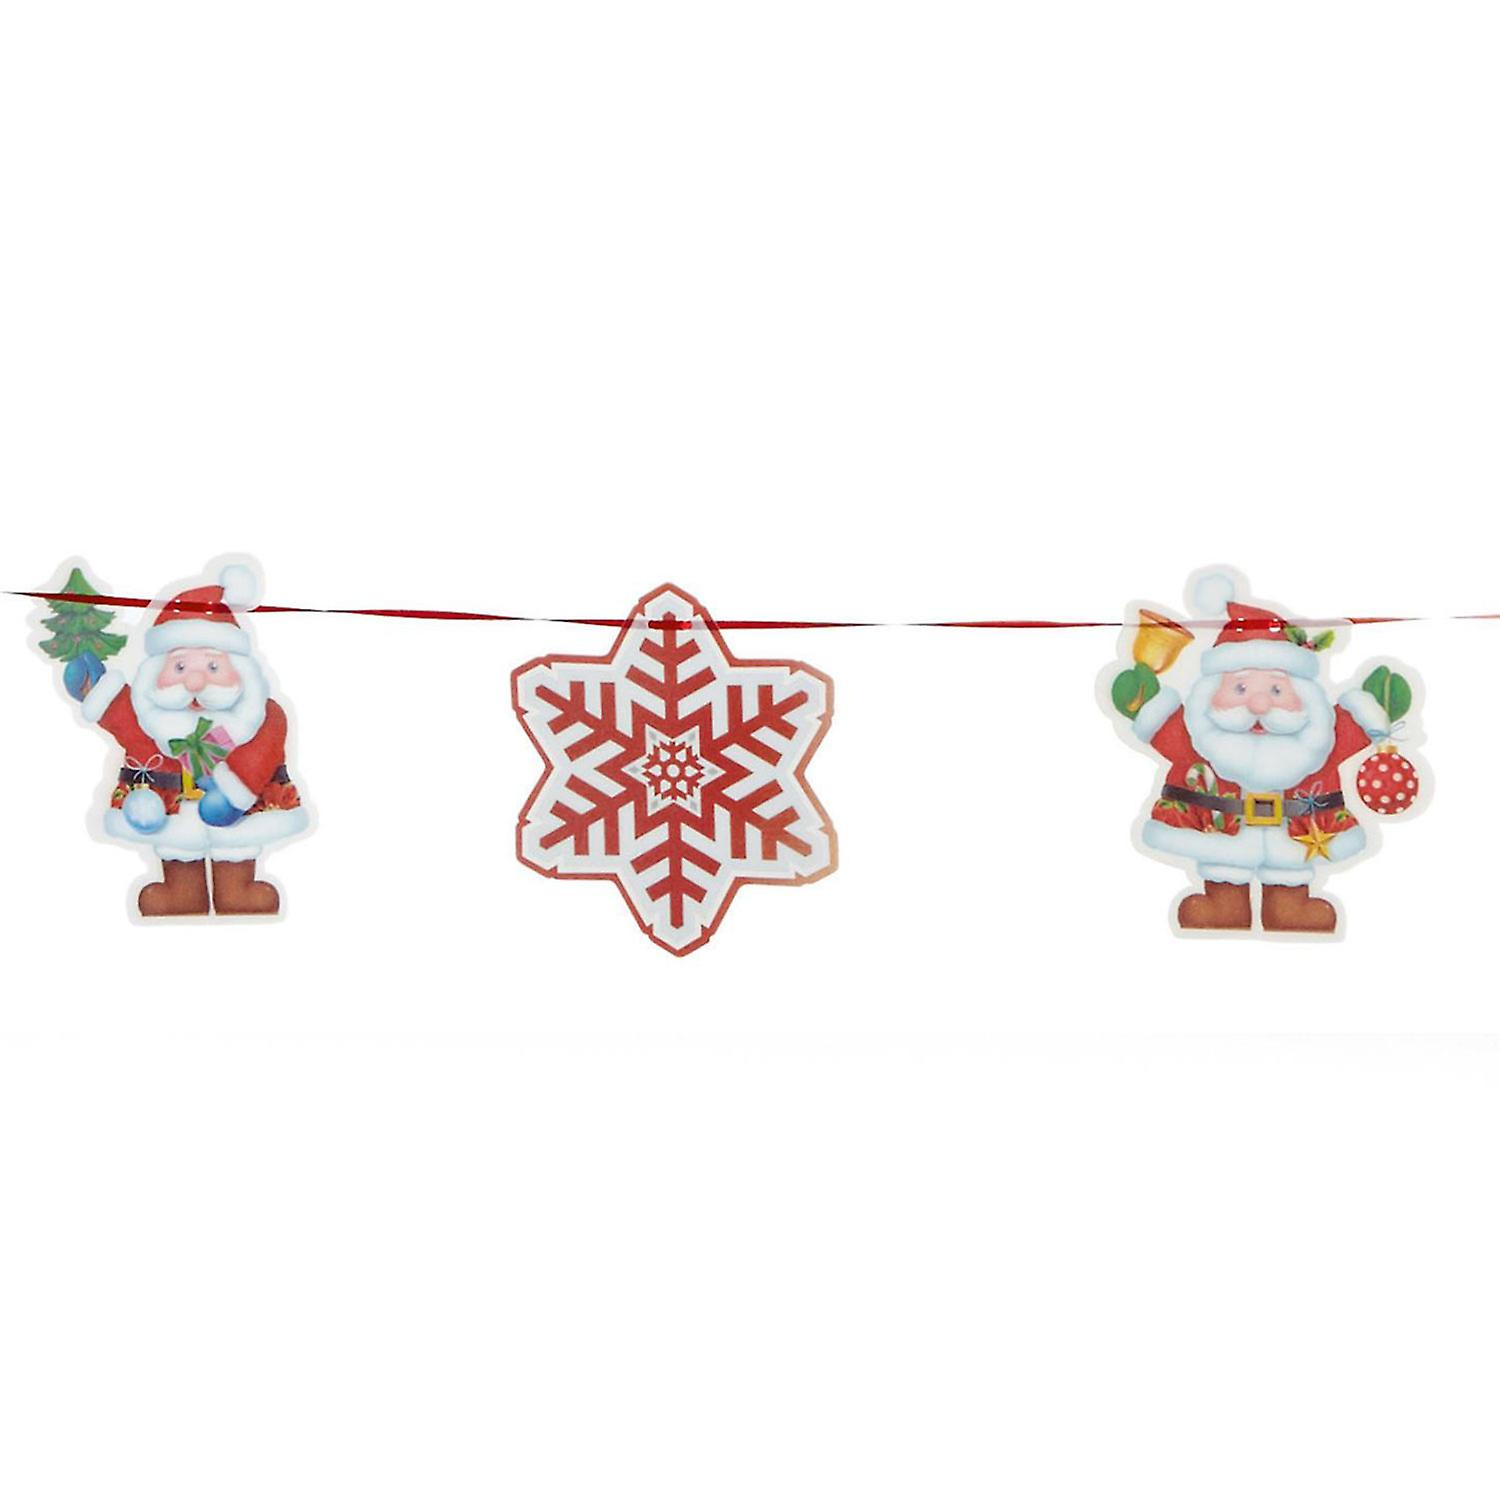 TRIXES 2M Holographic Christmas Santa and Snowflake 3D Garland 9PC with Ribbon